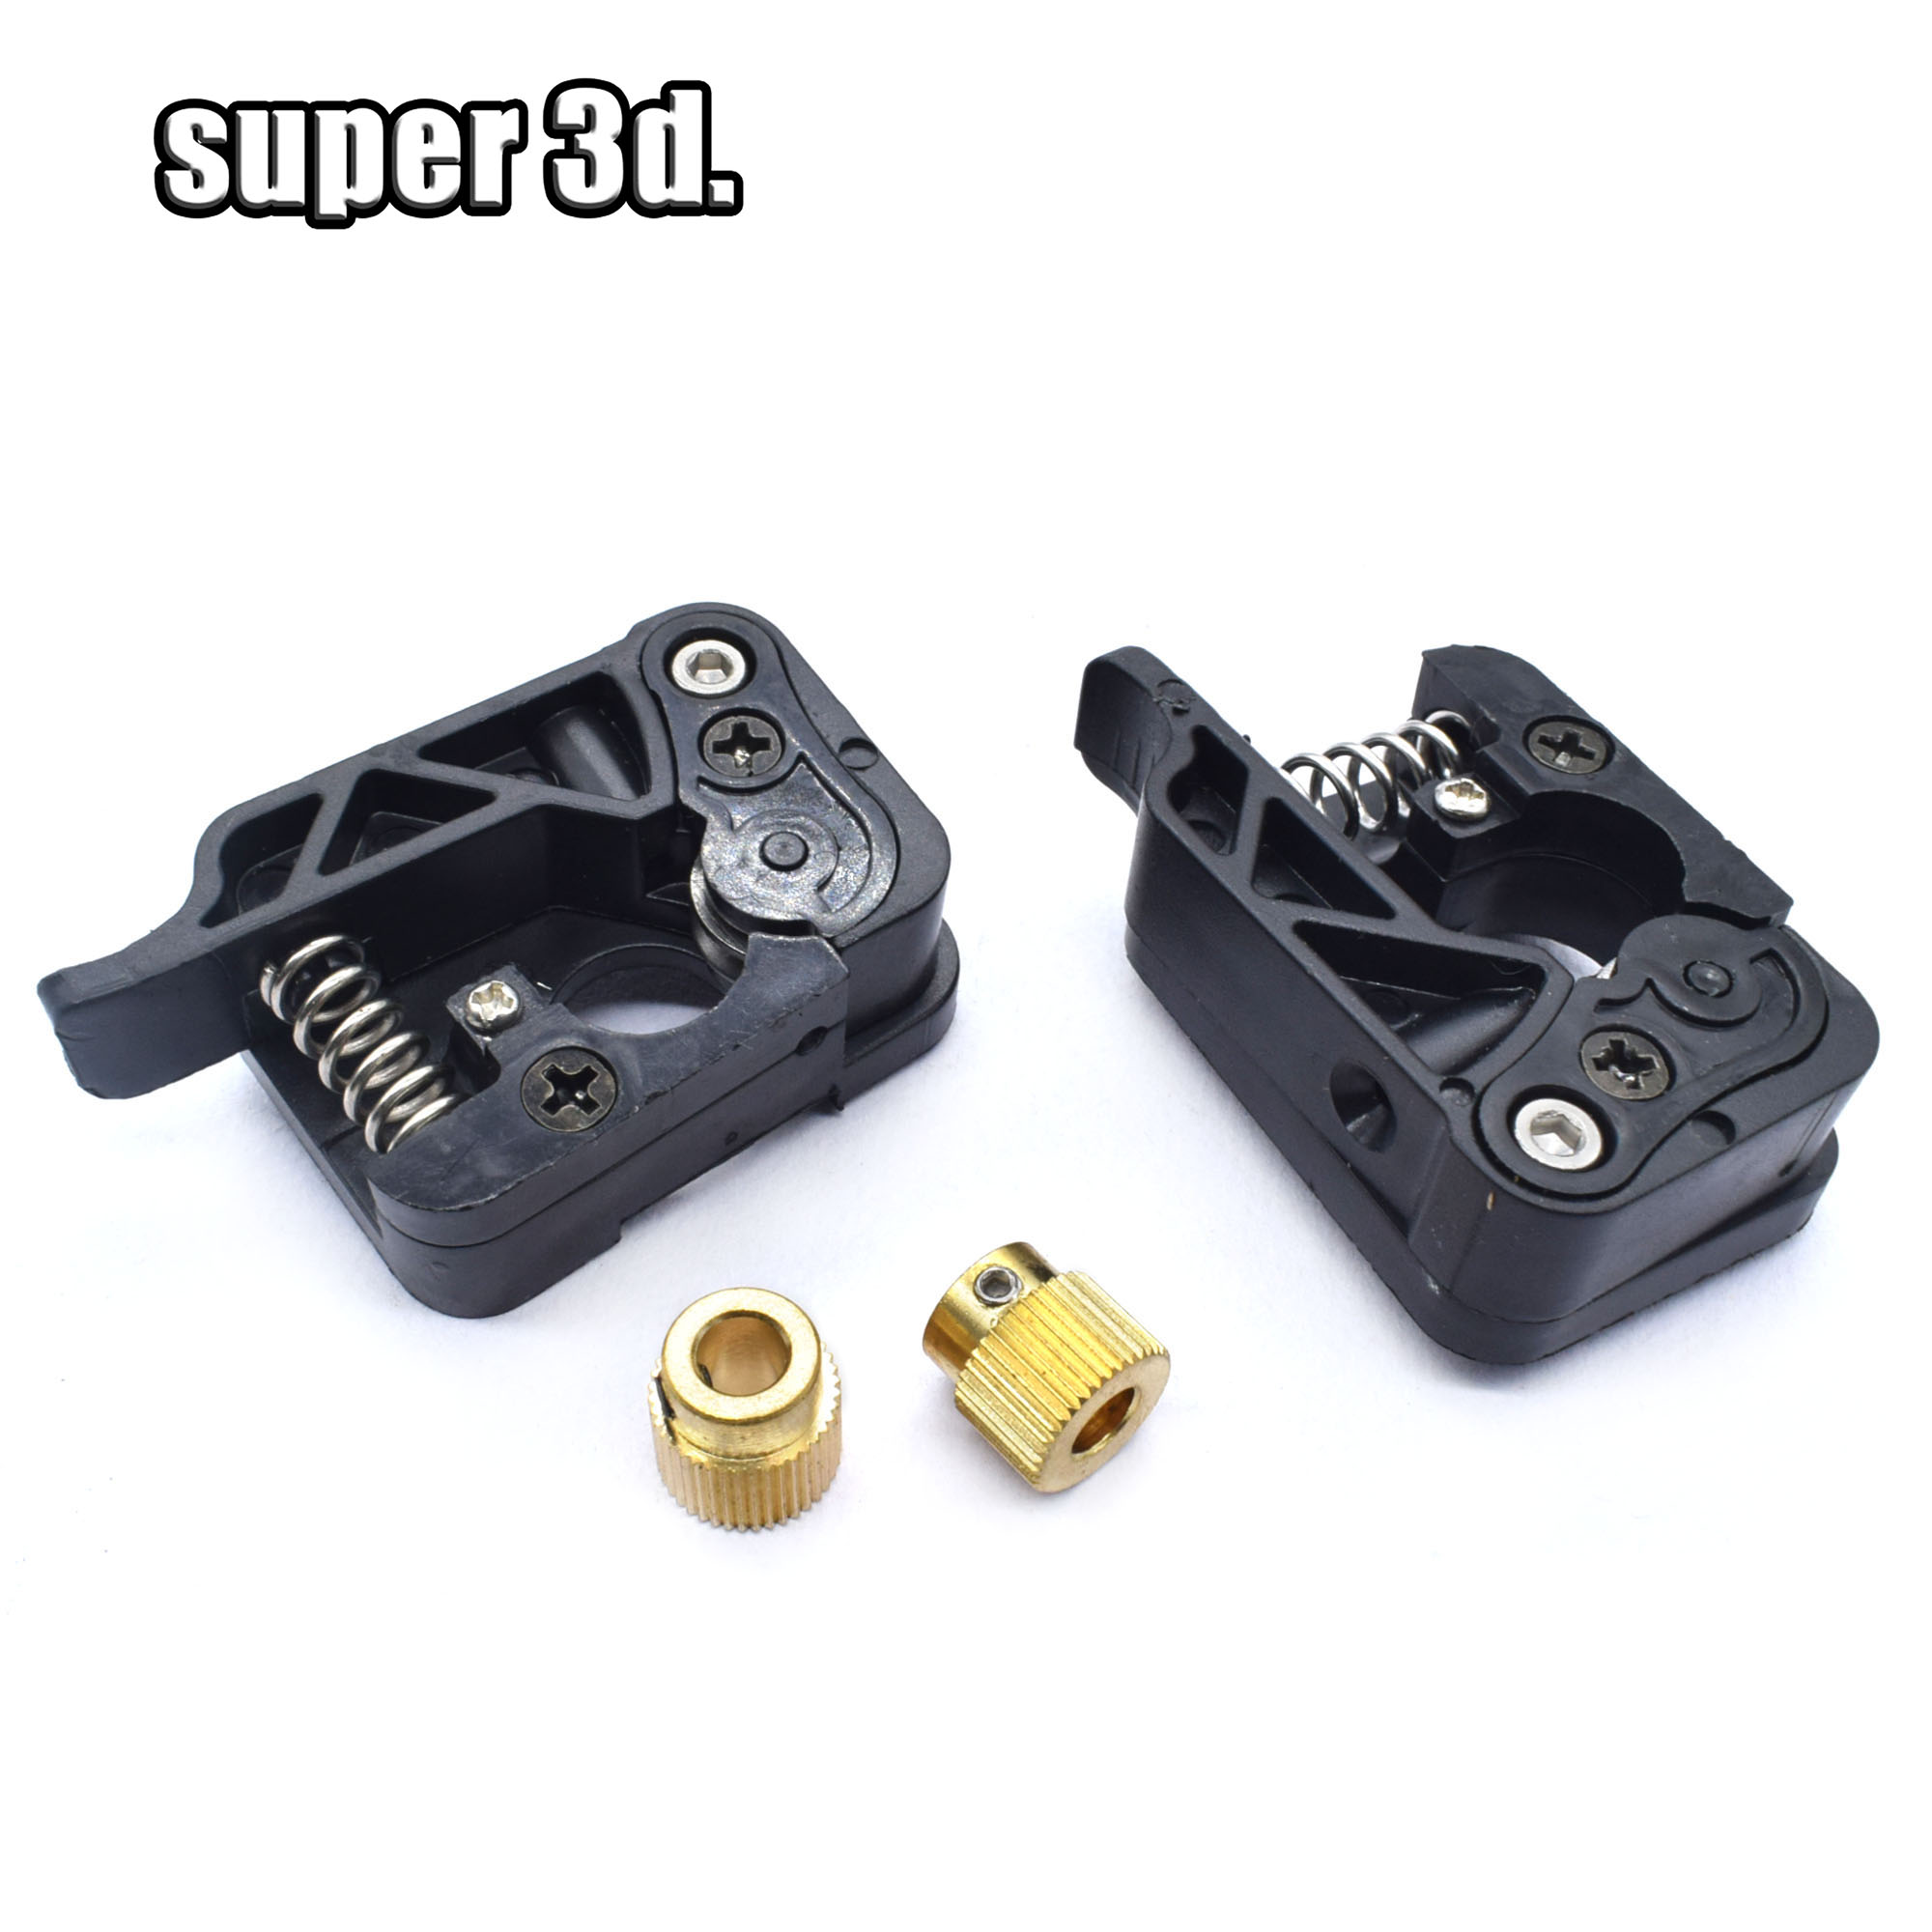 3D Printer Parts MK8 MK9 Extruder Feeder Device Kits Right Hand & Left Hand Side Fit 42mm Motor 1.75mm/3.0mm Fliament